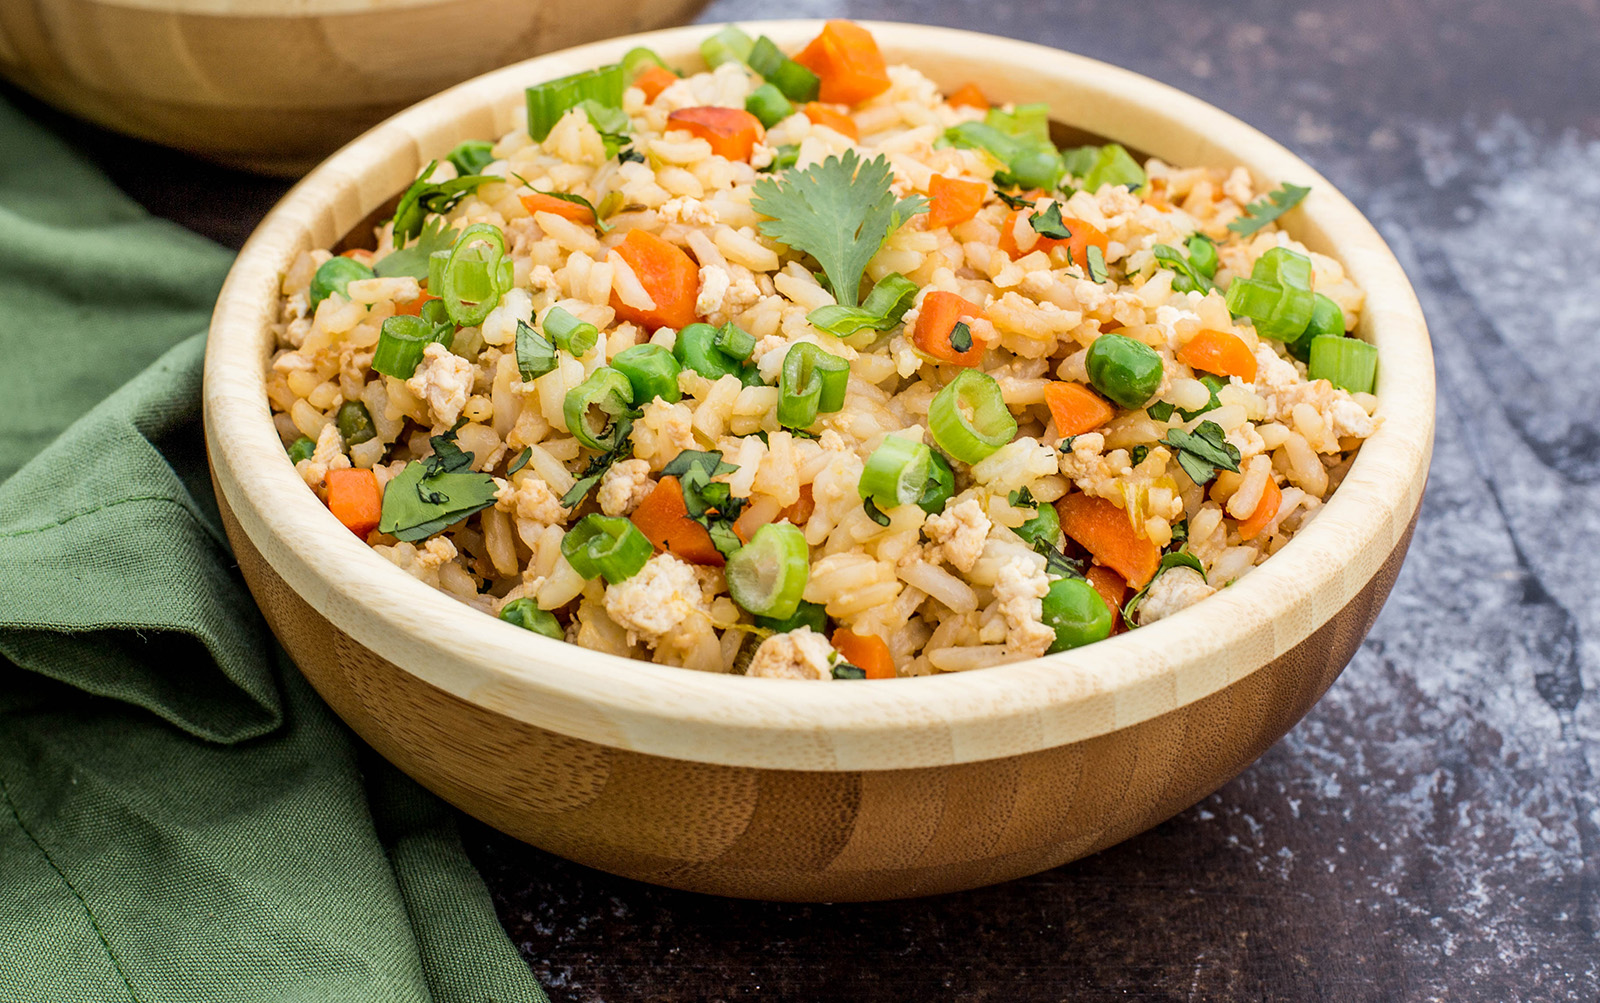 Vegan and gluten-free Simple Vegan Fried Rice